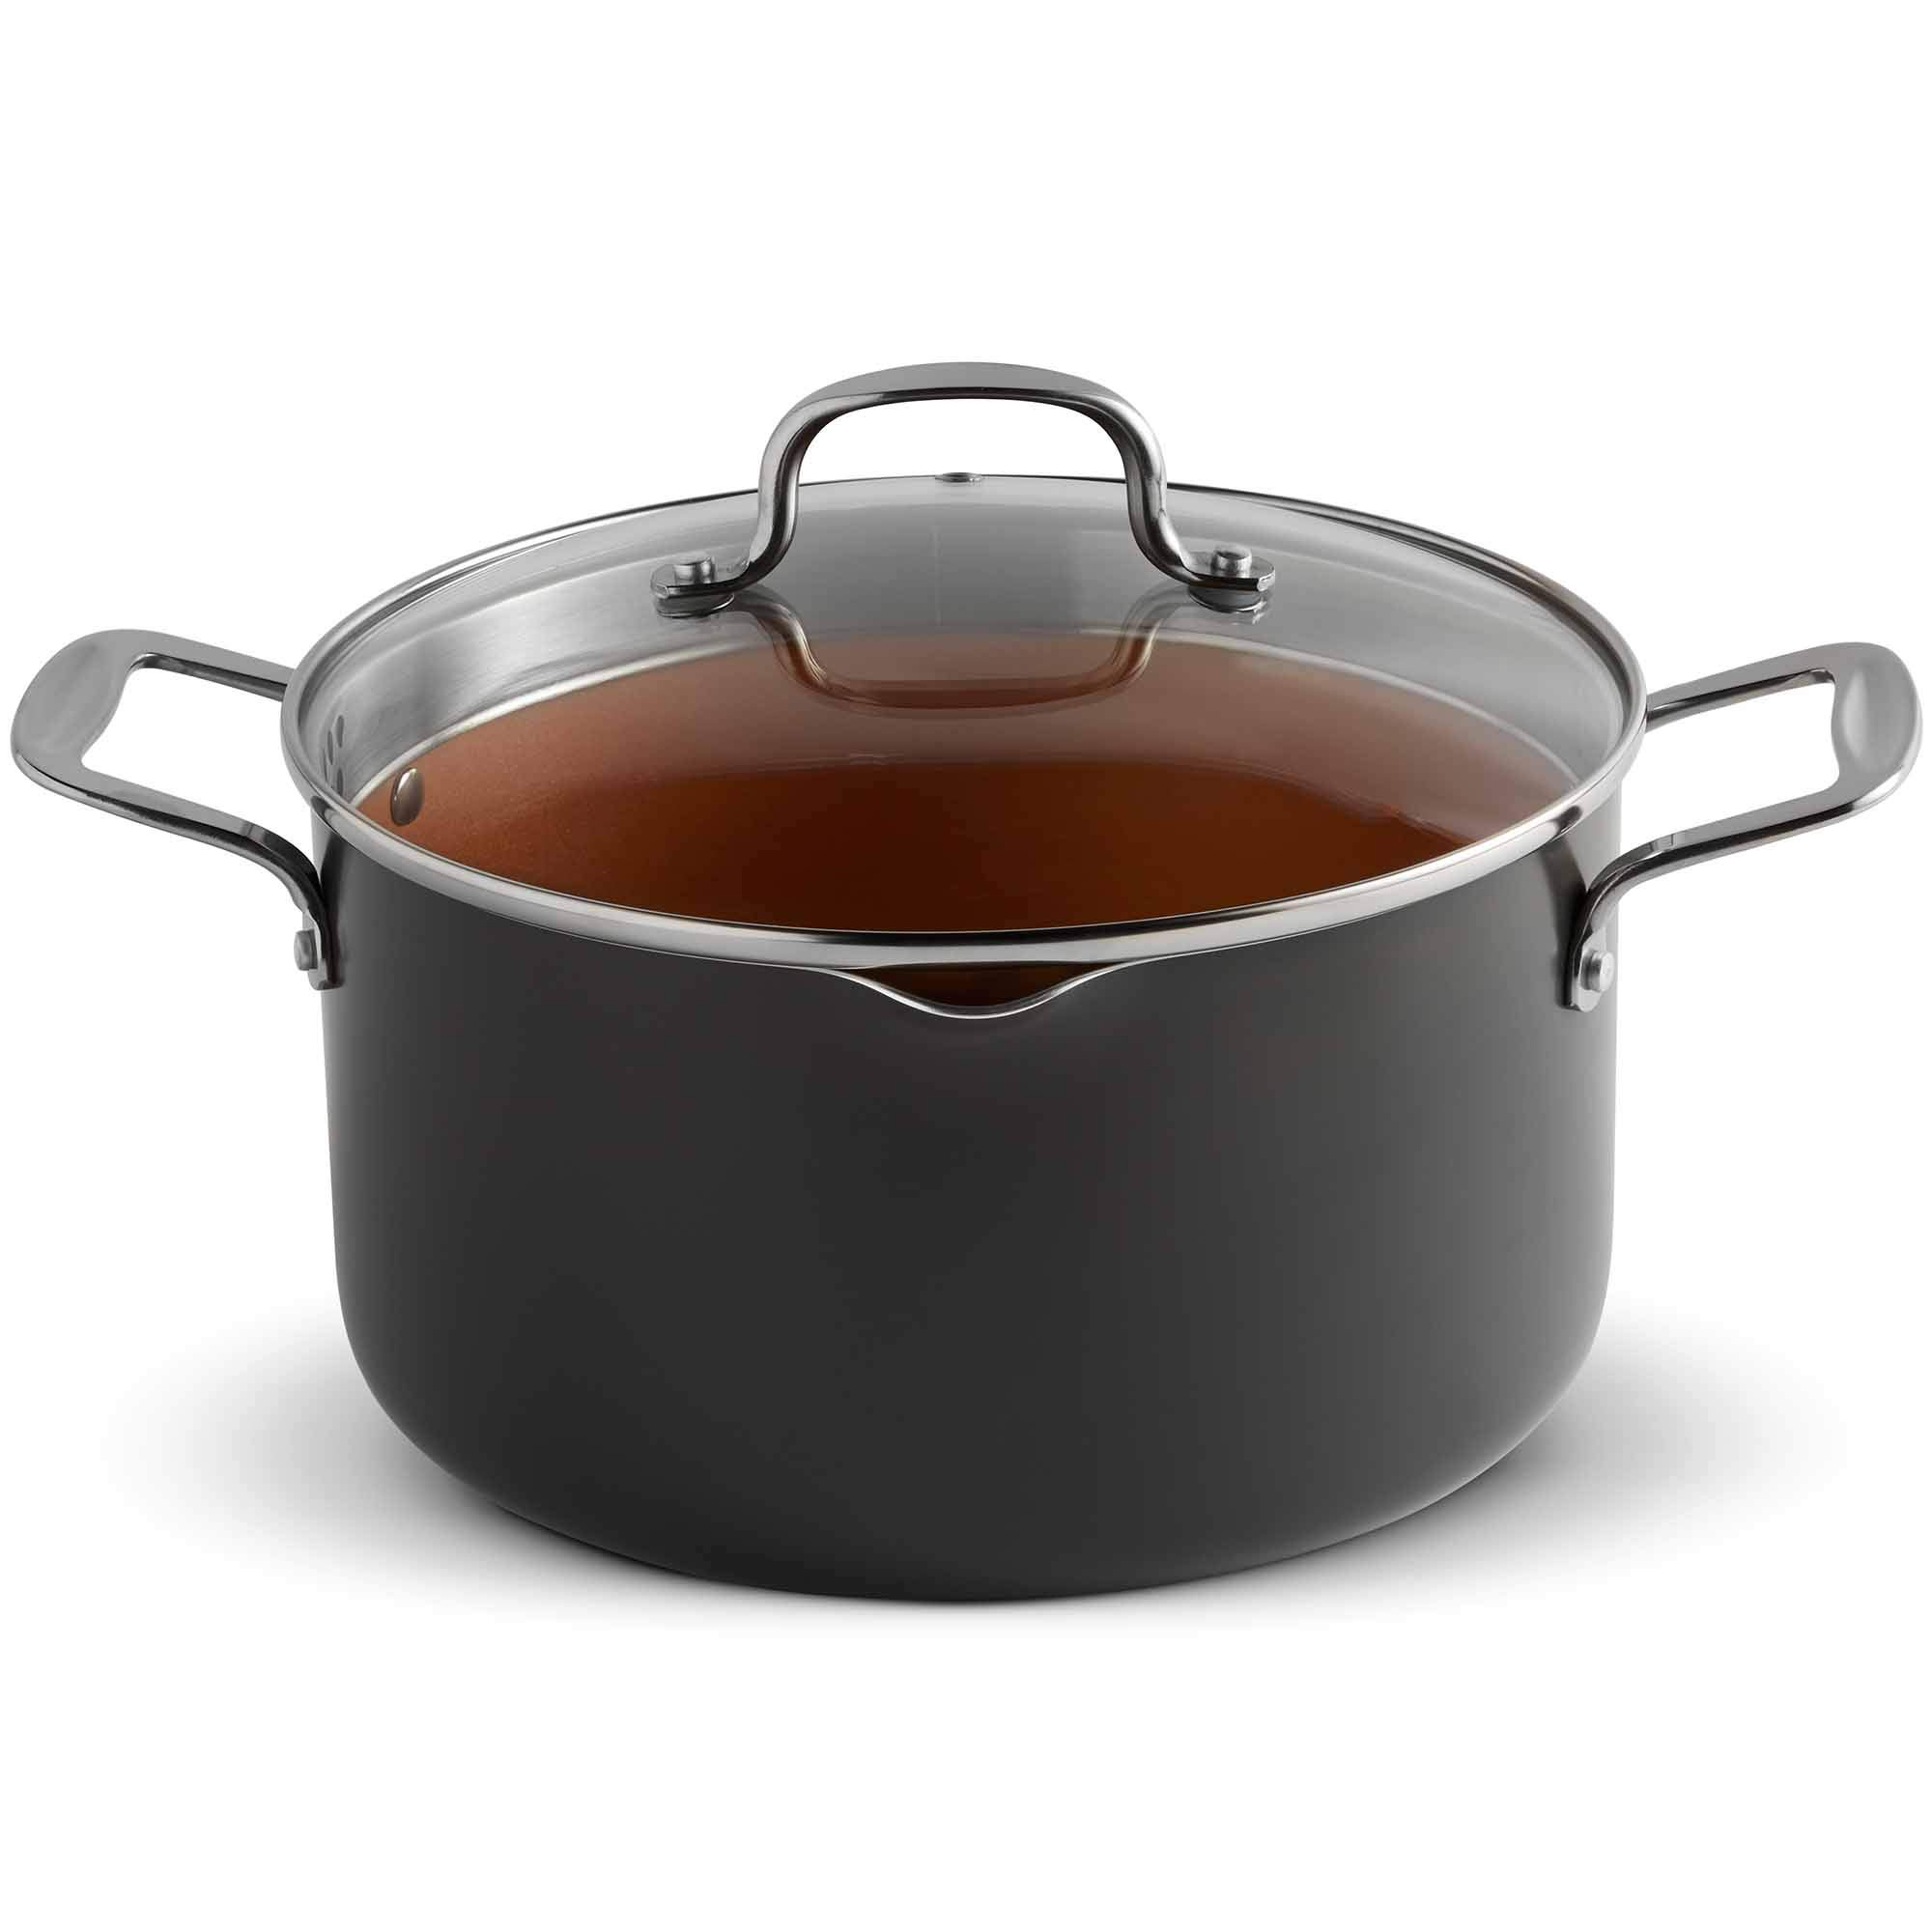 VonShef Casserole and Pasta Multi Pot with Strainer Lid, Easy Clean, Non-Stick Copper-Colored Interior, Stainless Steel Handles and Tempered Glass Lid, Induction Hob Ready, Copper, 5 Quart Capacity by VonShef (Image #1)